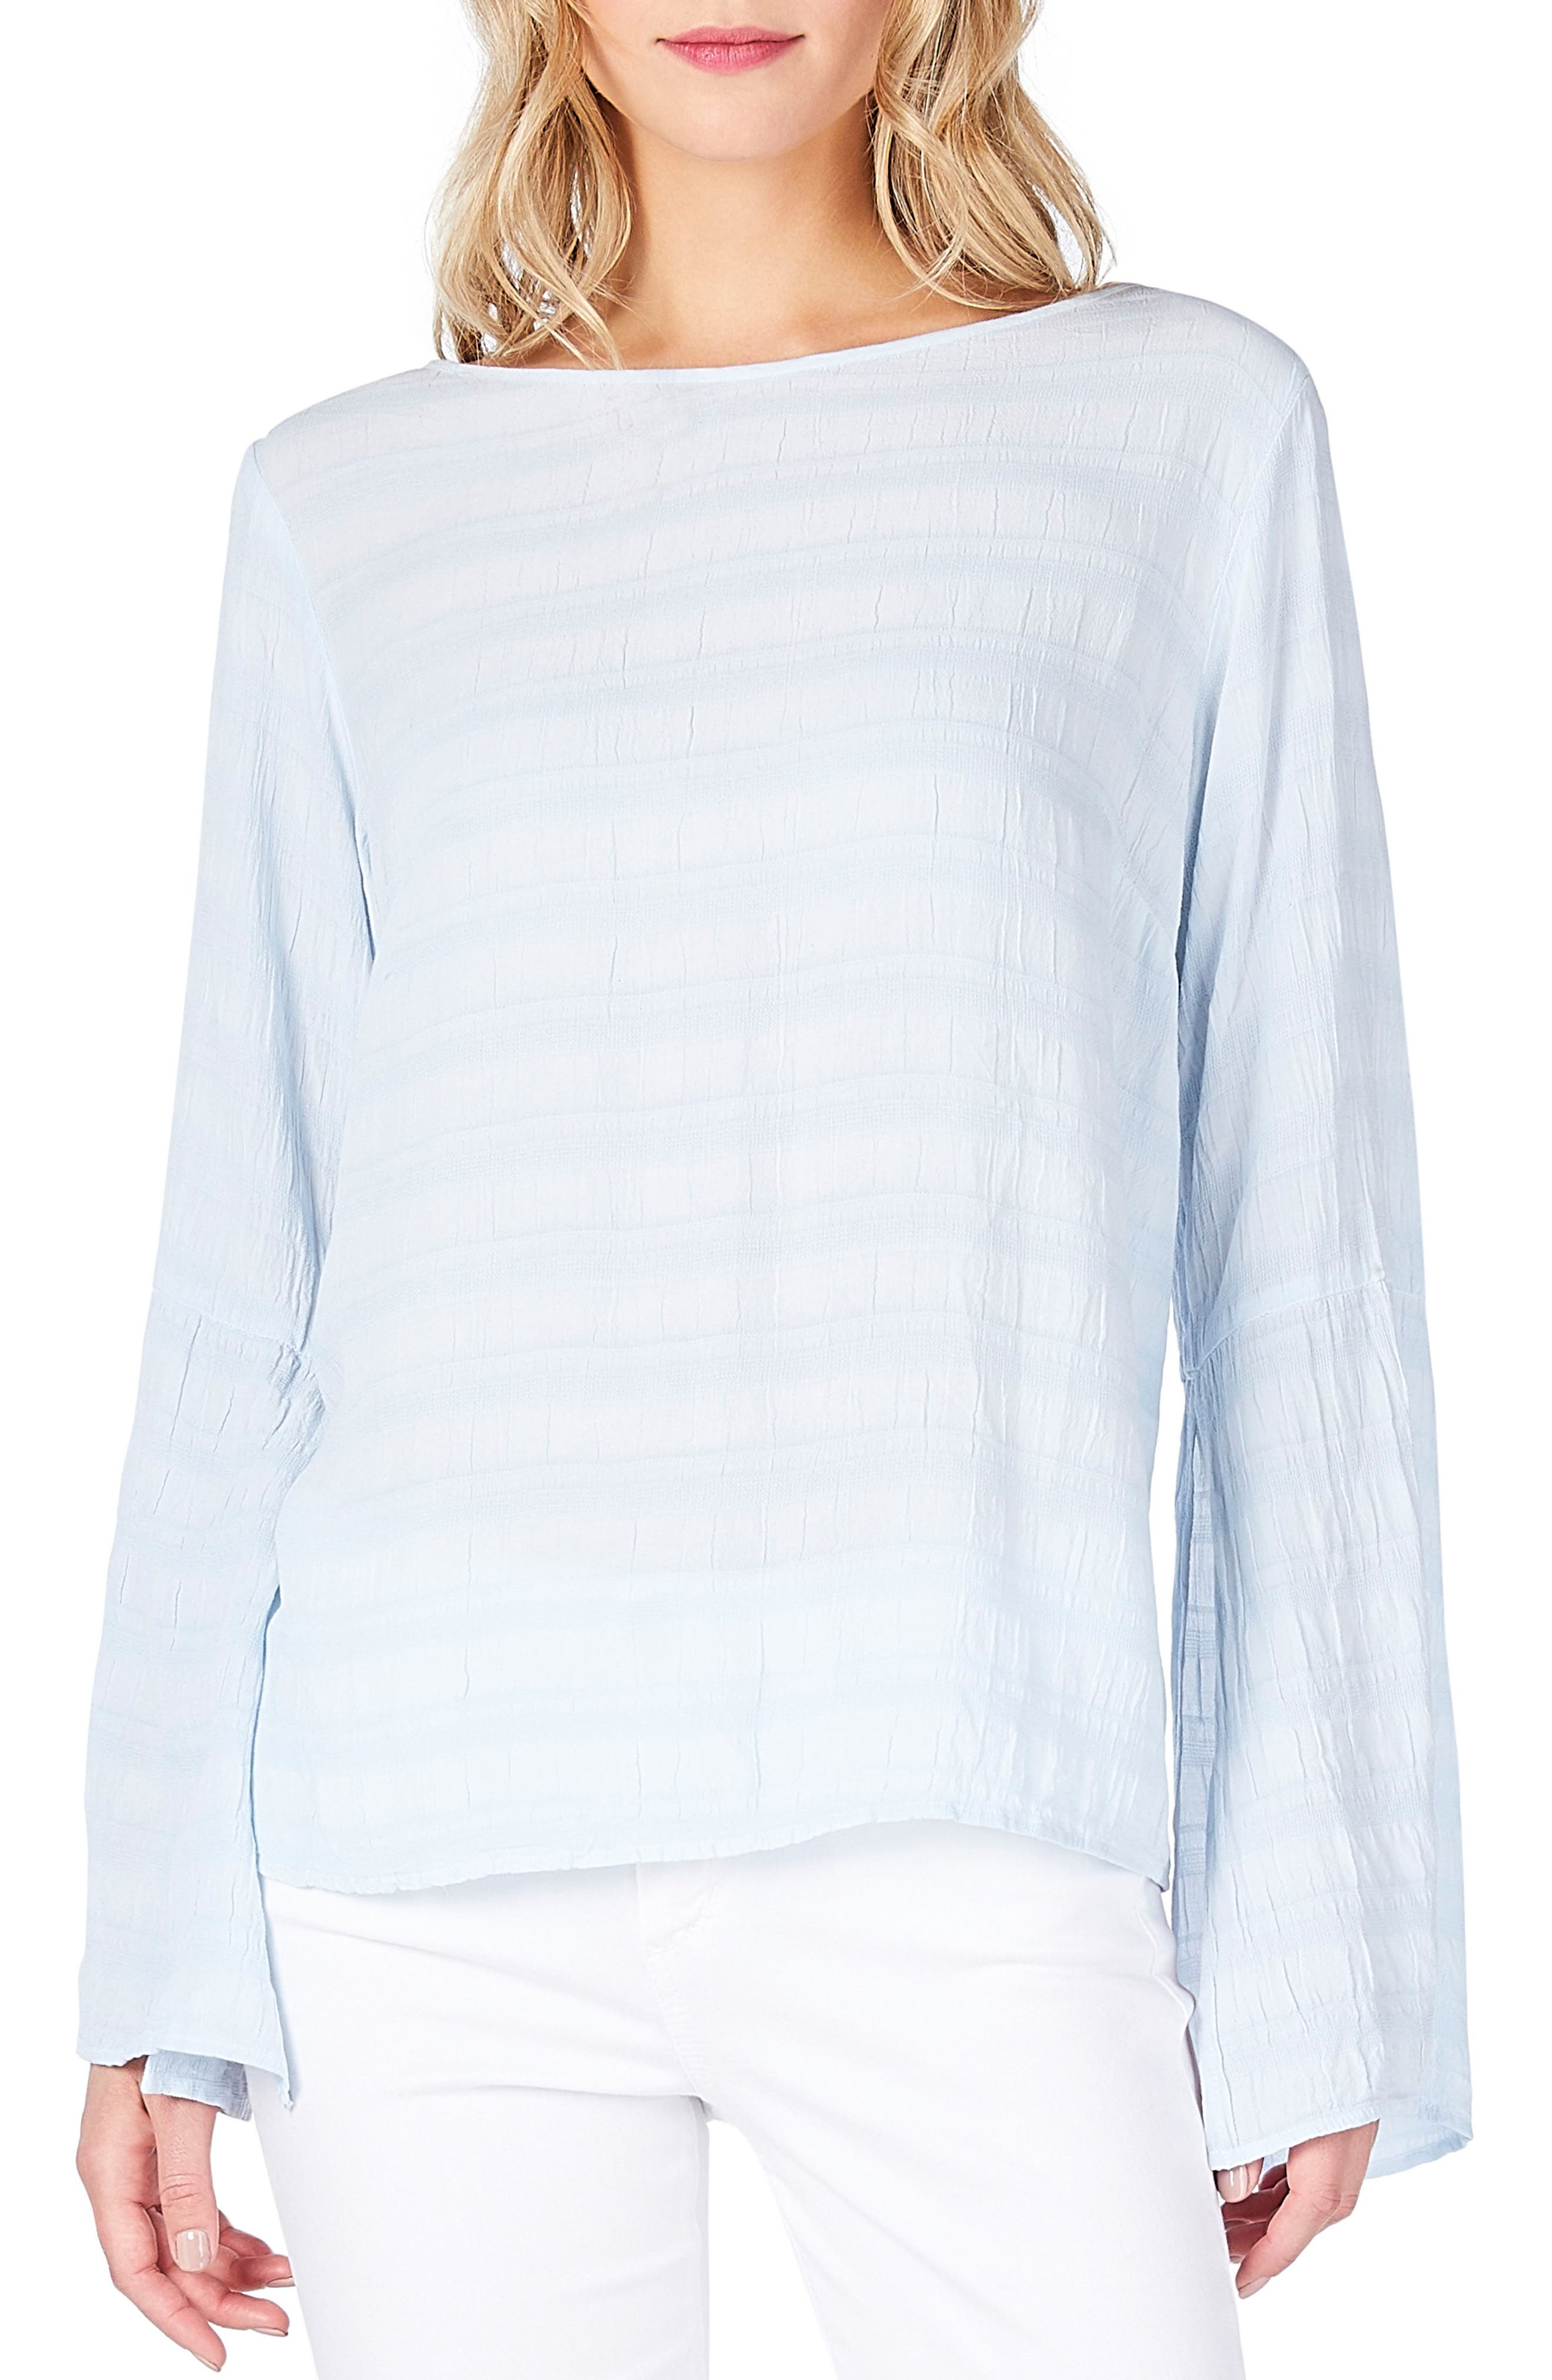 Slit Bell Sleeve Top,                             Main thumbnail 1, color,                             Sea Glass